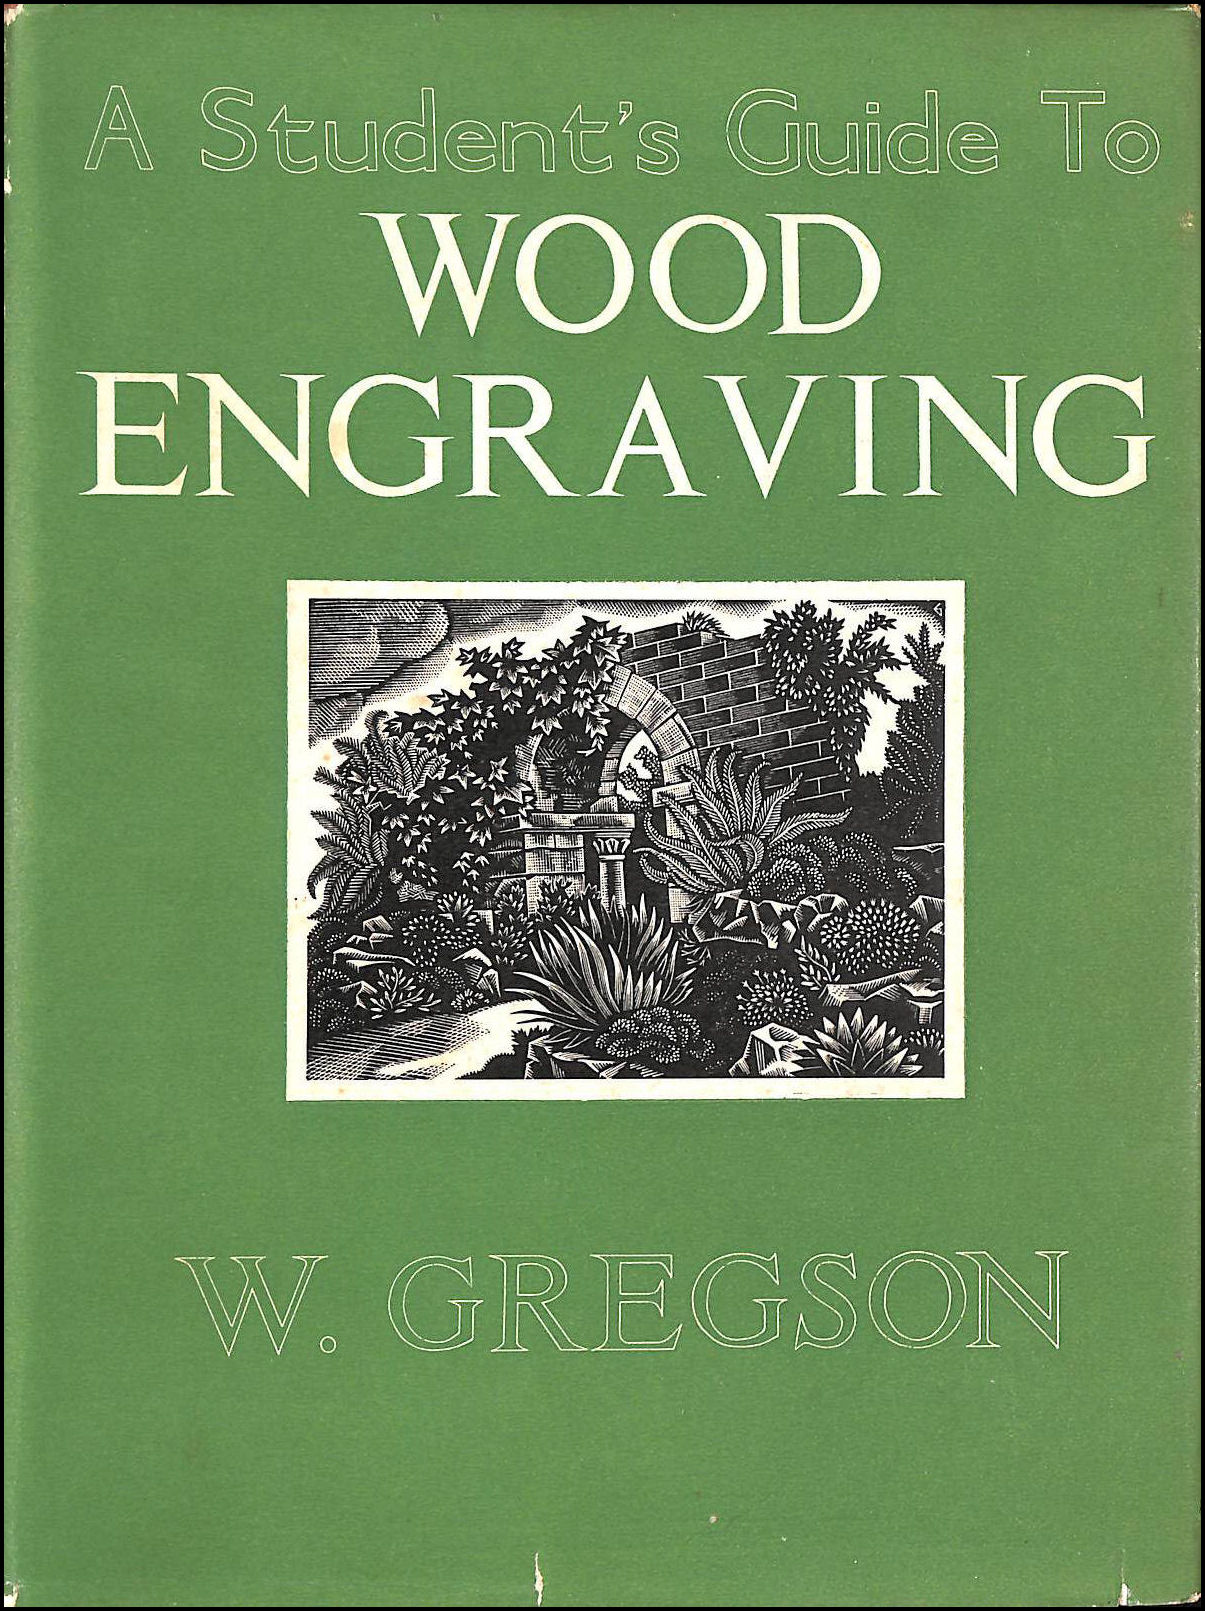 A student's guide to wood engraving (Books for the craftsman series), Gregson, Wilfred